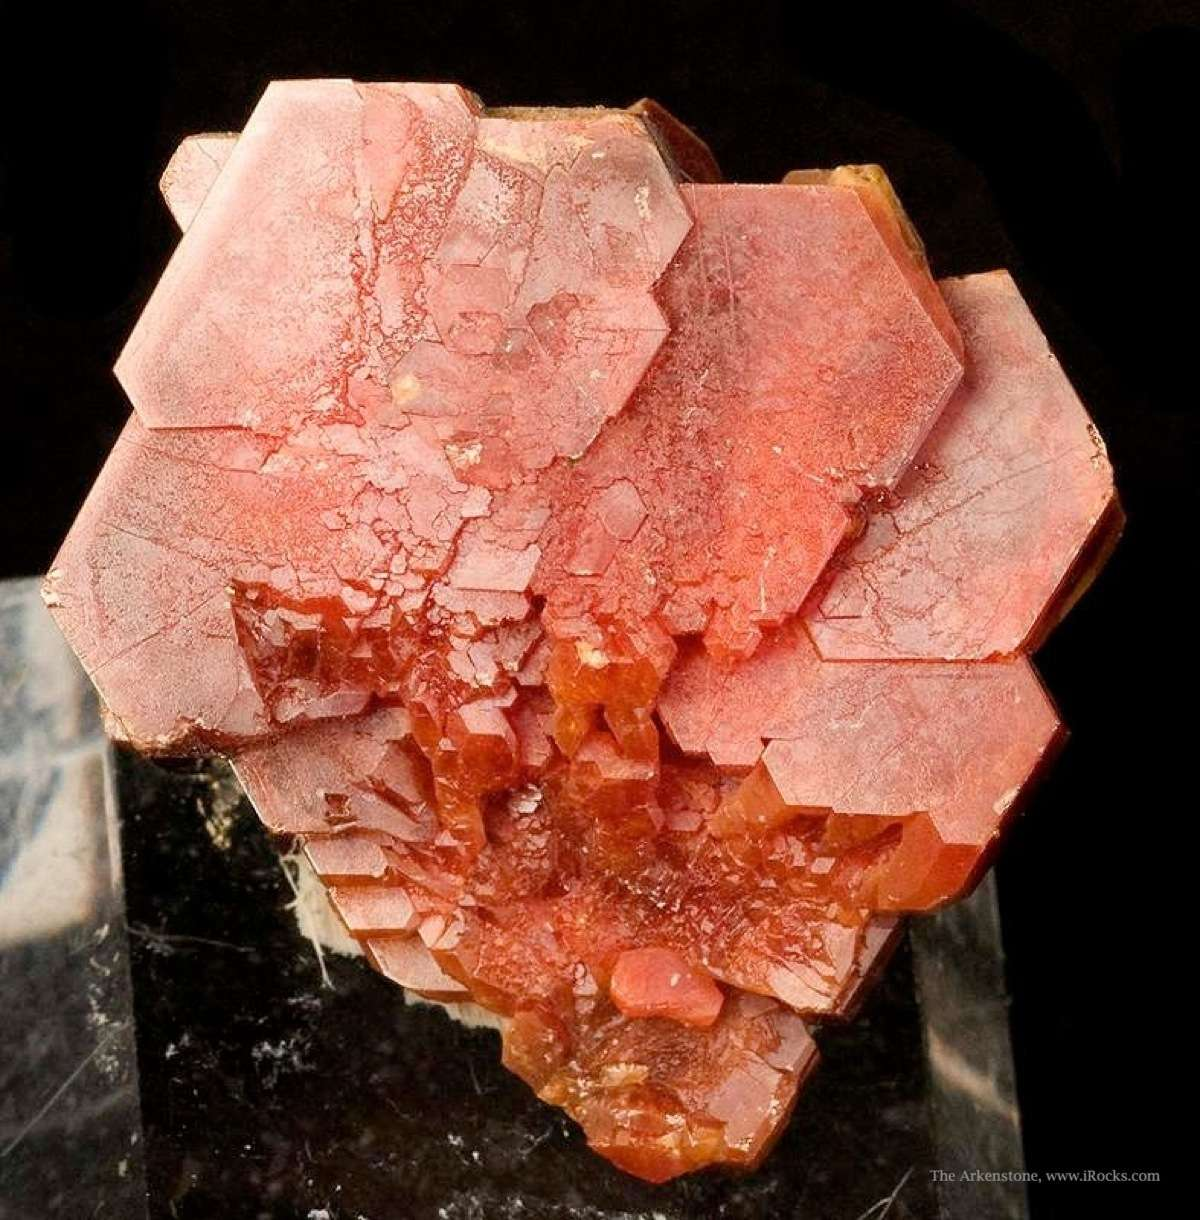 From 2009 noted thick robust crystals The dominant large crystal